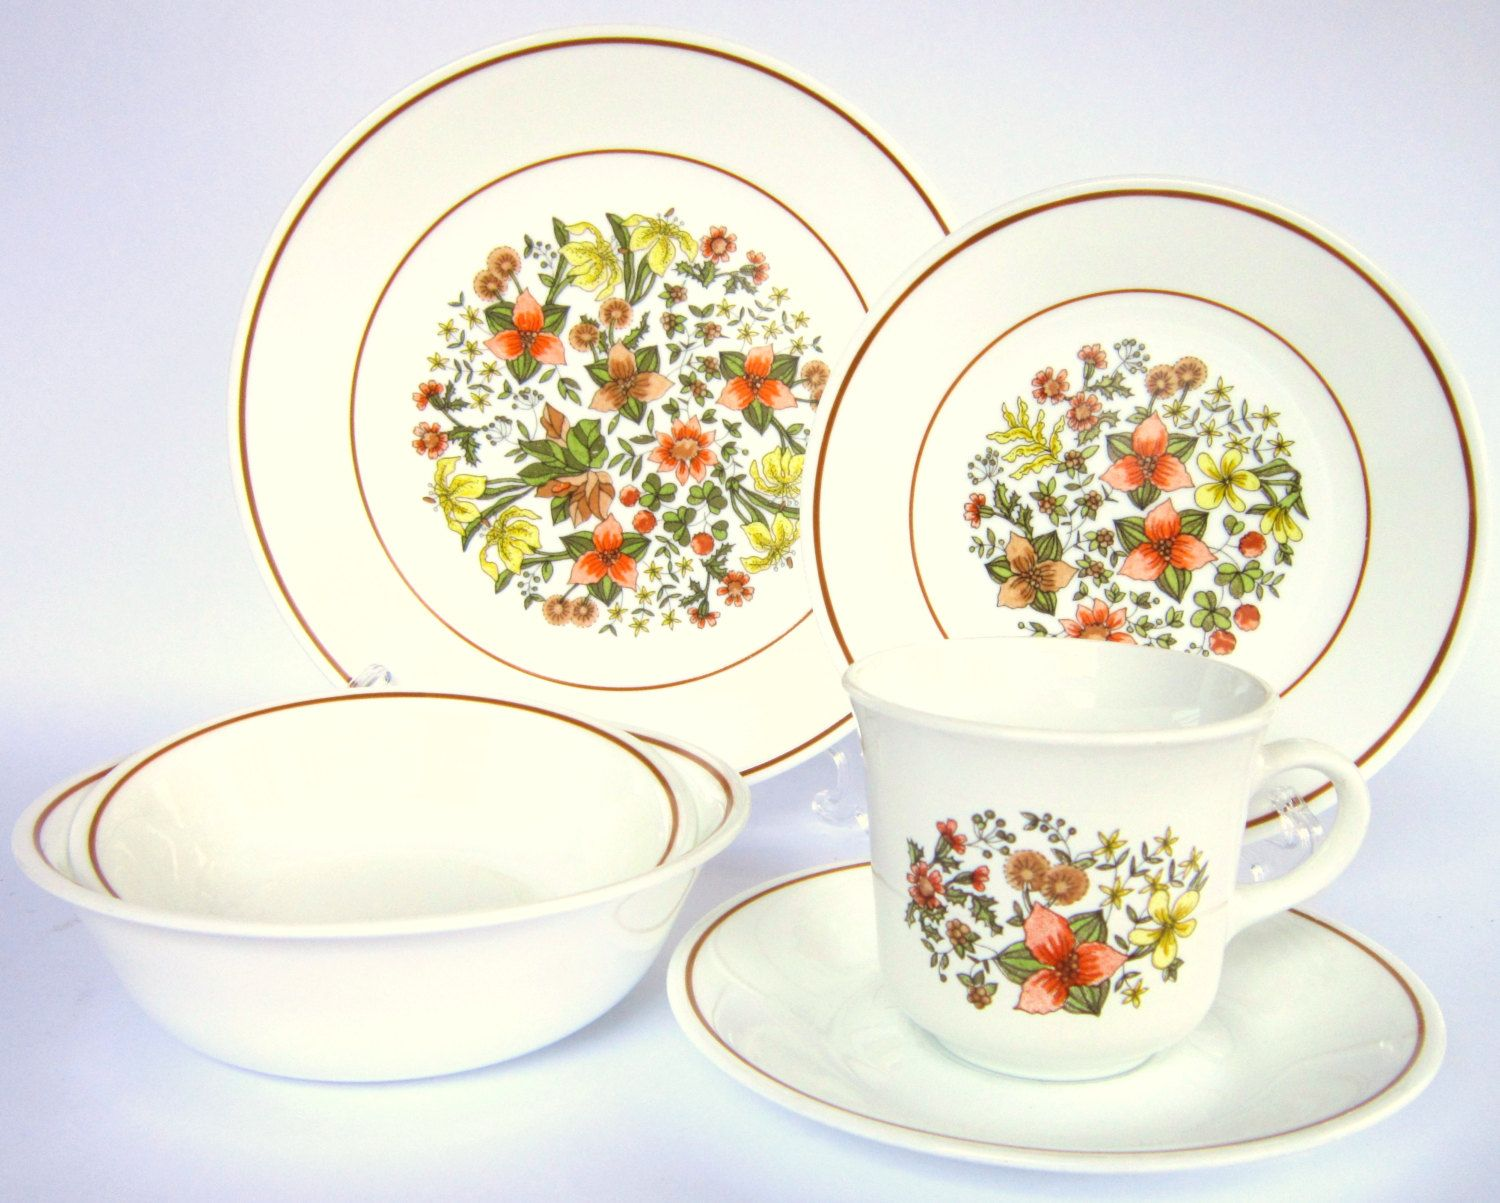 vintage corelle indian summer dishes date to the late 1970s cedar run vintage pinterest. Black Bedroom Furniture Sets. Home Design Ideas